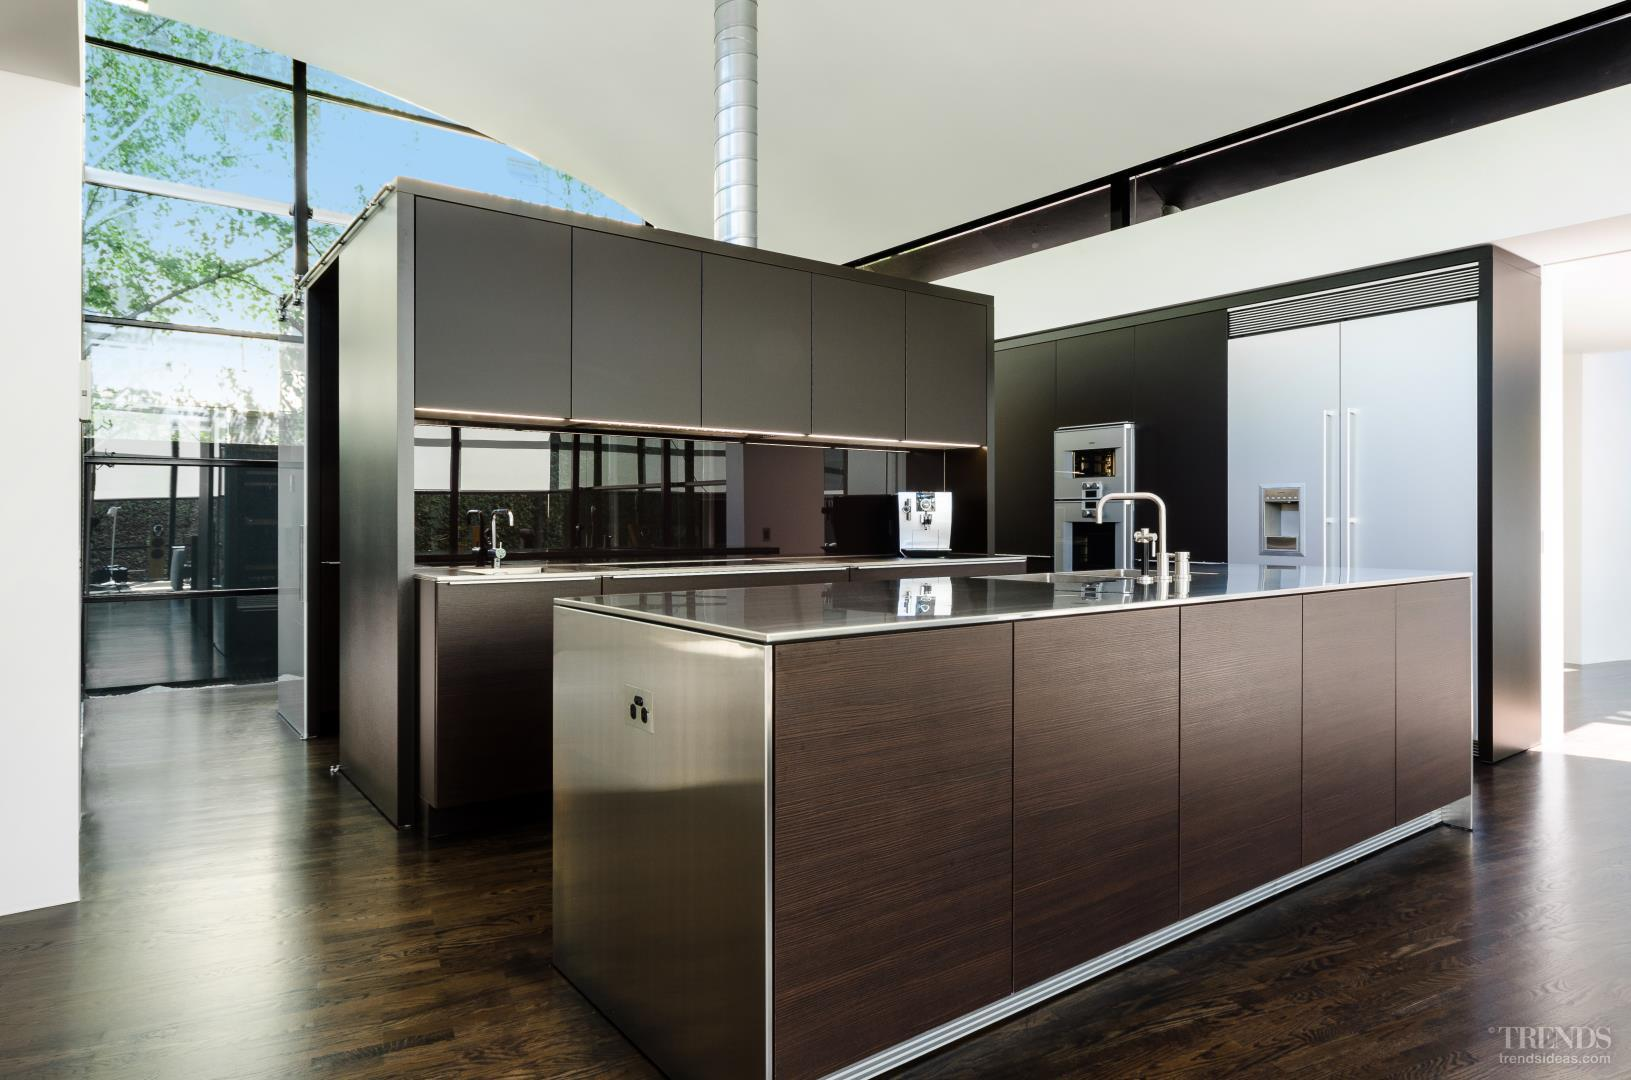 Cube Shaped Kitchen Combines Two Tone Poggenpohl Cabinetry